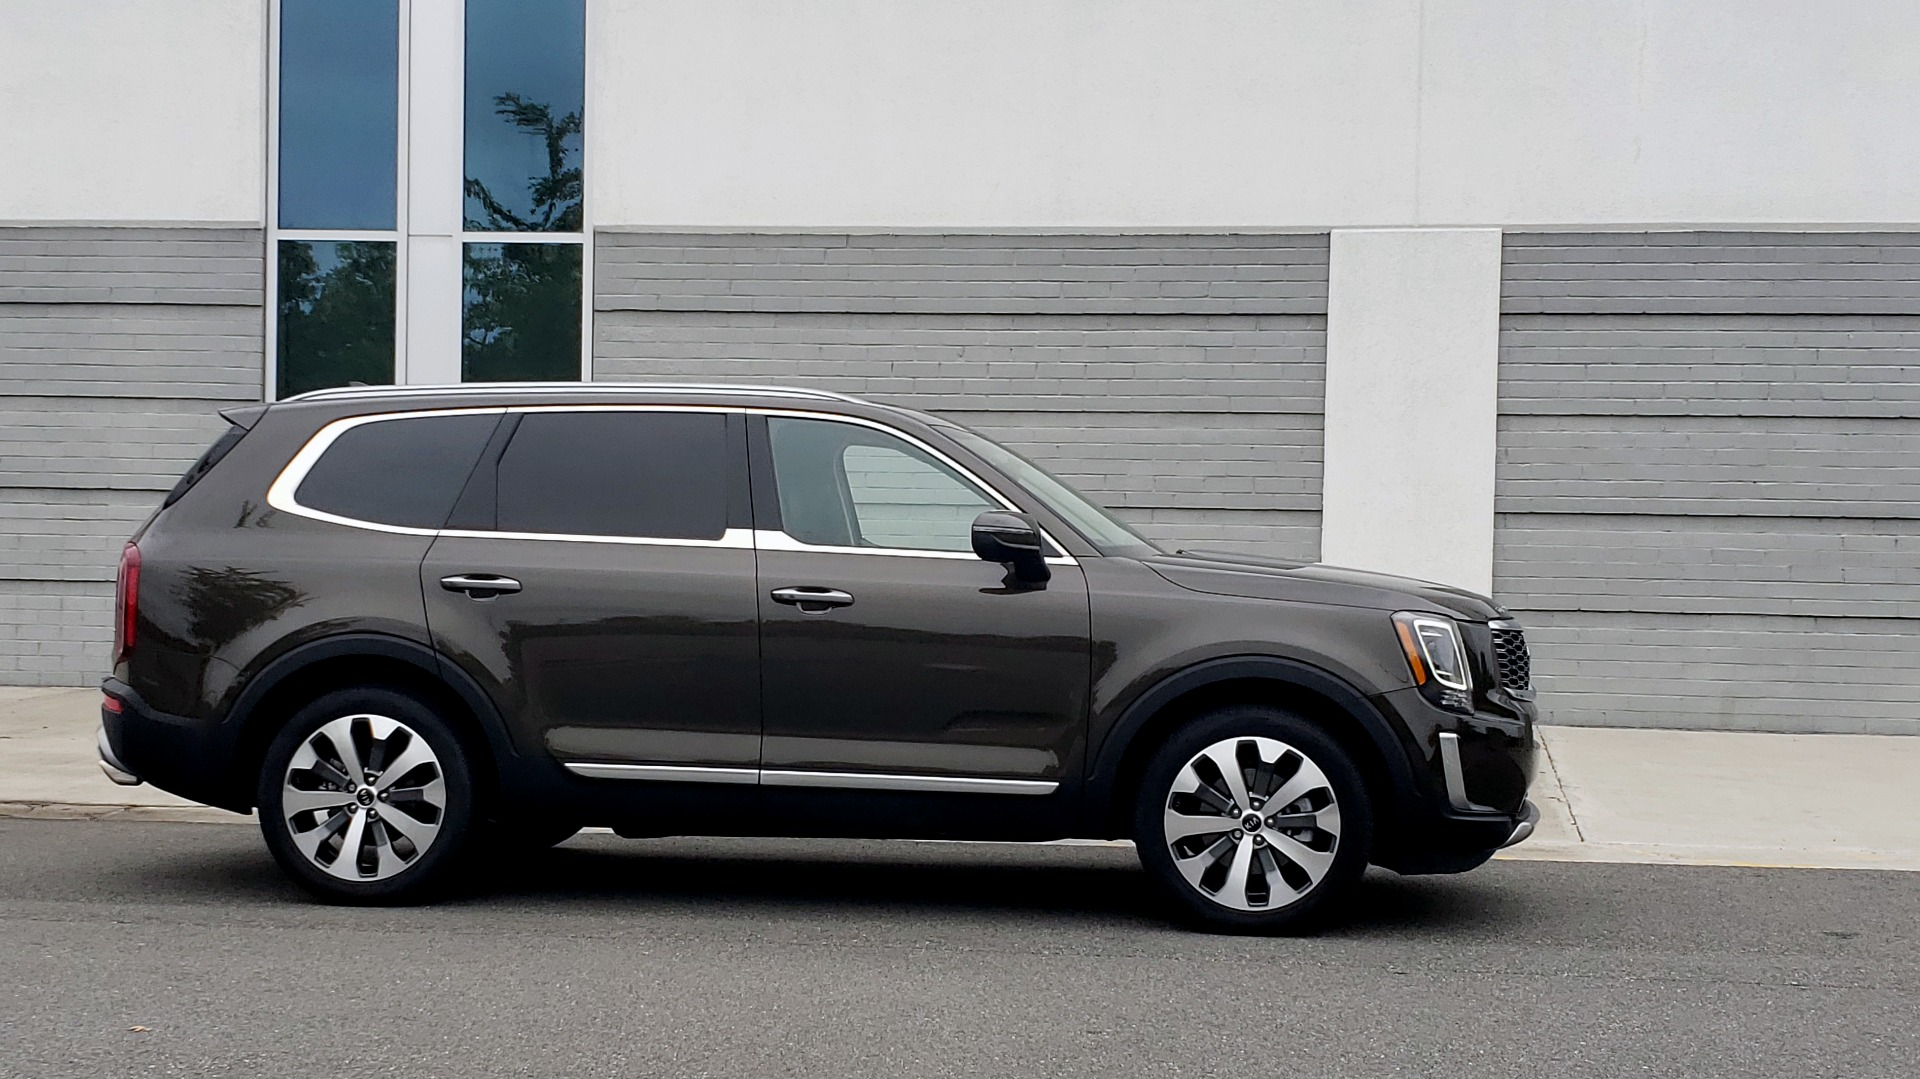 Used 2020 Kia TELLURIDE S 3.8L / FWD / 8-SPD AUTO / SUNROOF / REARVIEW / 20INCH WHEELS for sale $41,595 at Formula Imports in Charlotte NC 28227 8